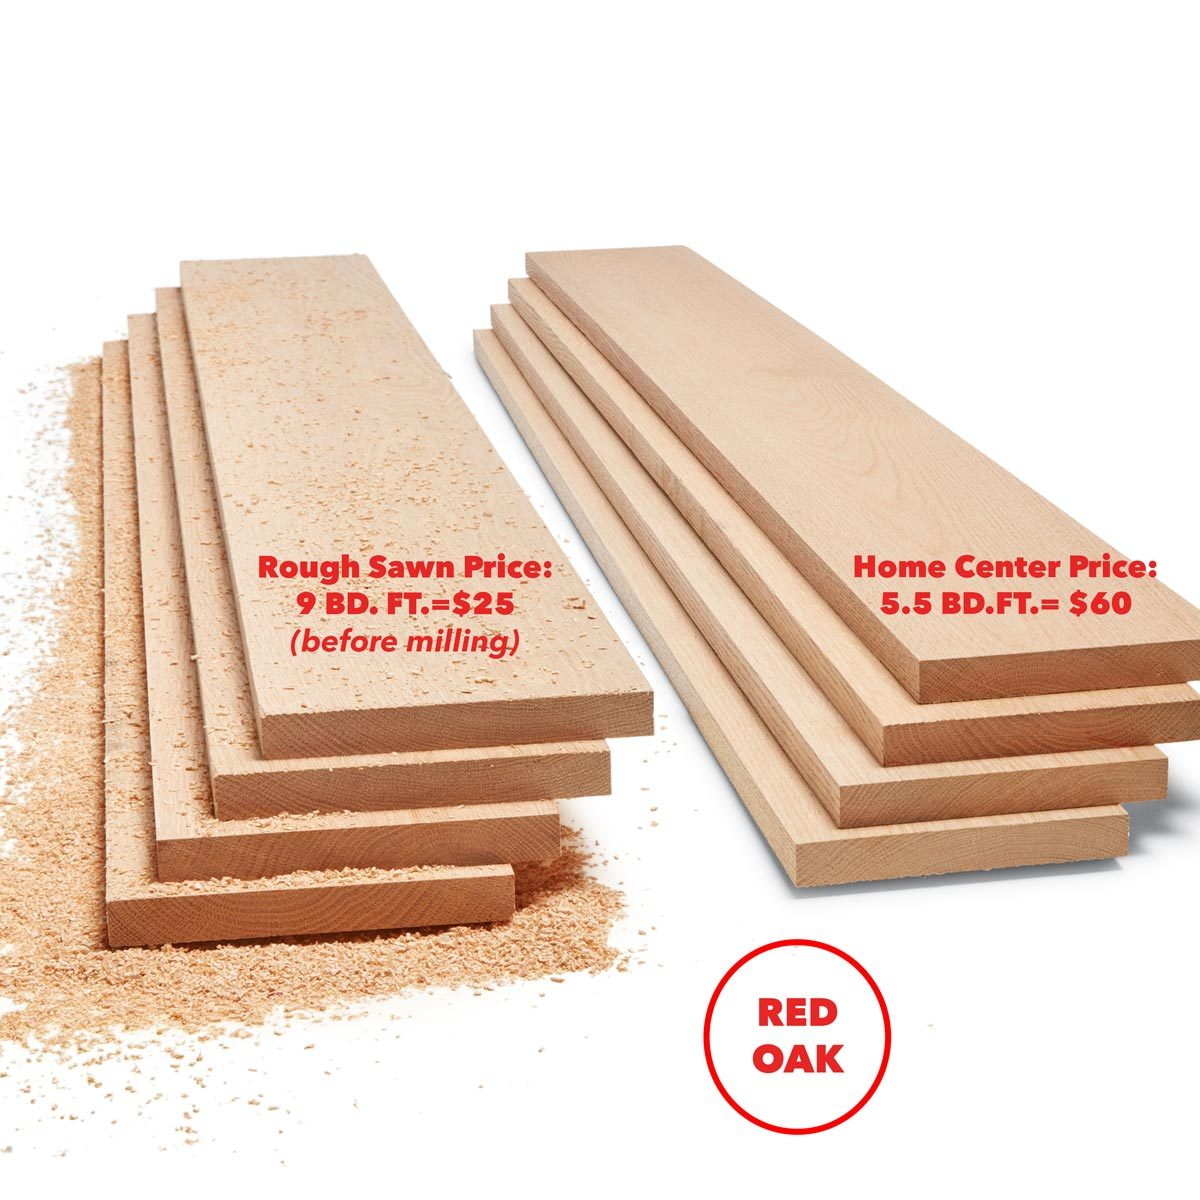 Save Money on Rough-Sawn